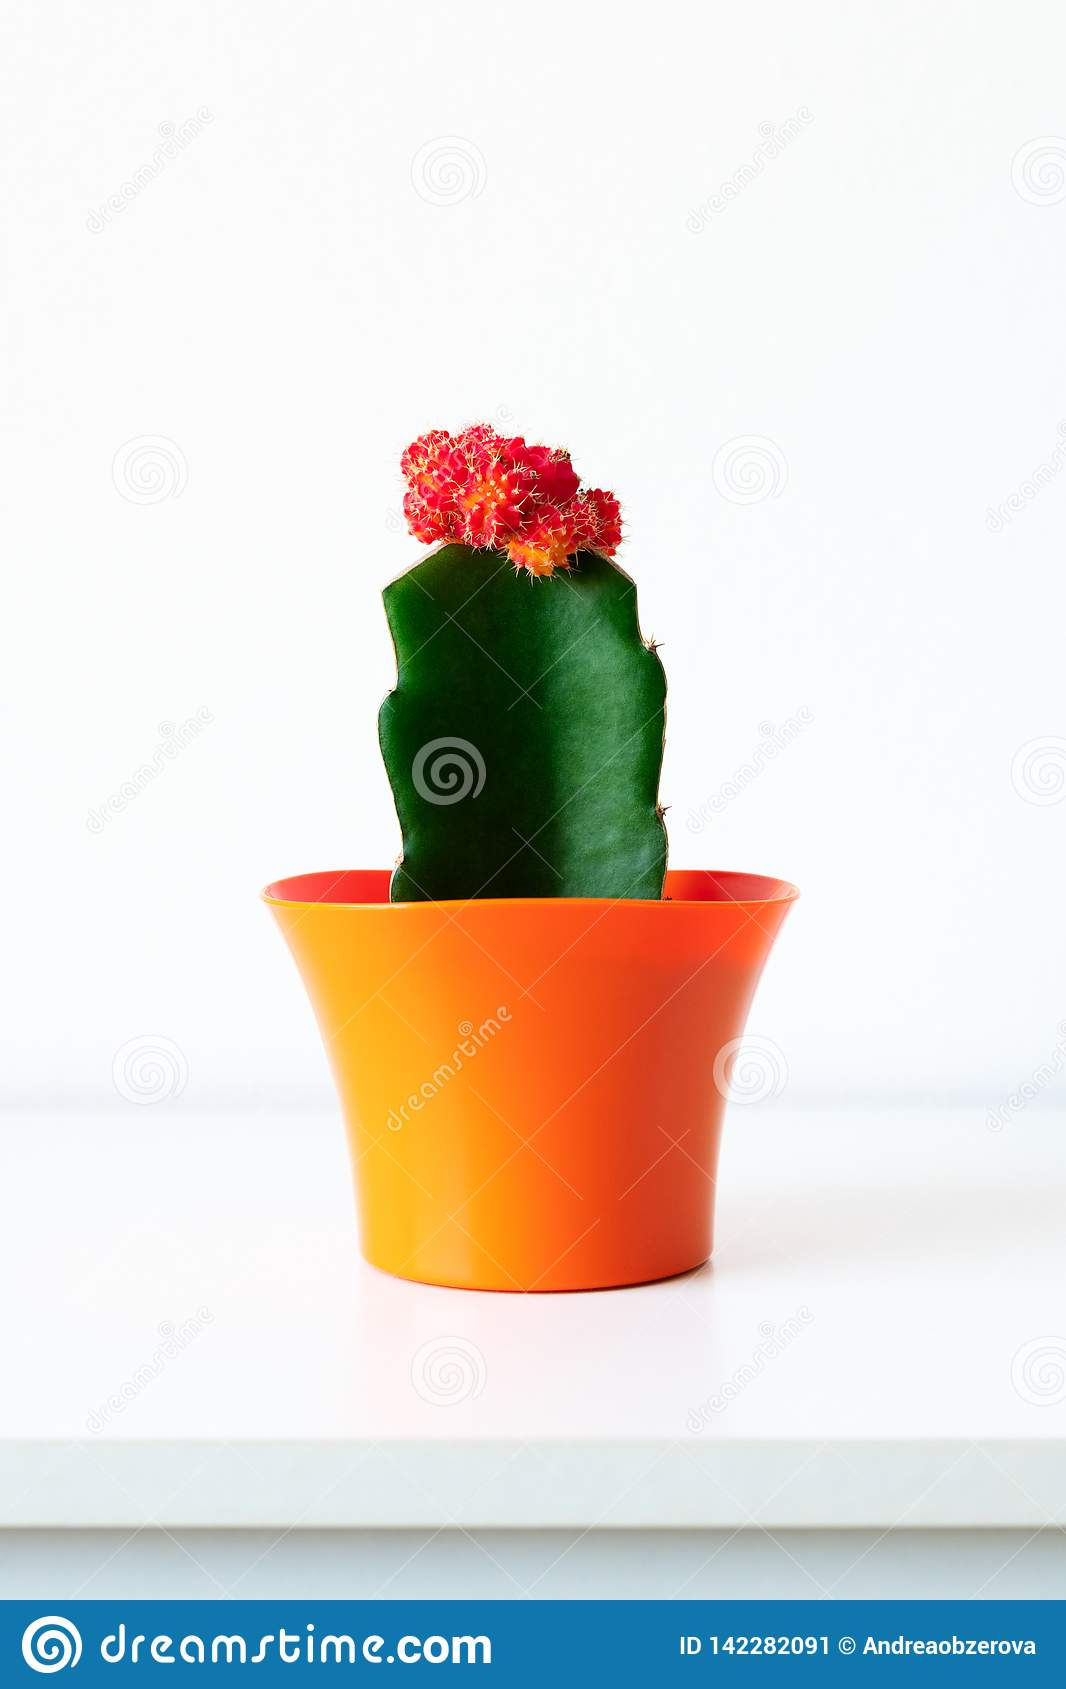 Flowering cactus plant in bright orange flower pot against white wall. House plant on white shelf with copy space.